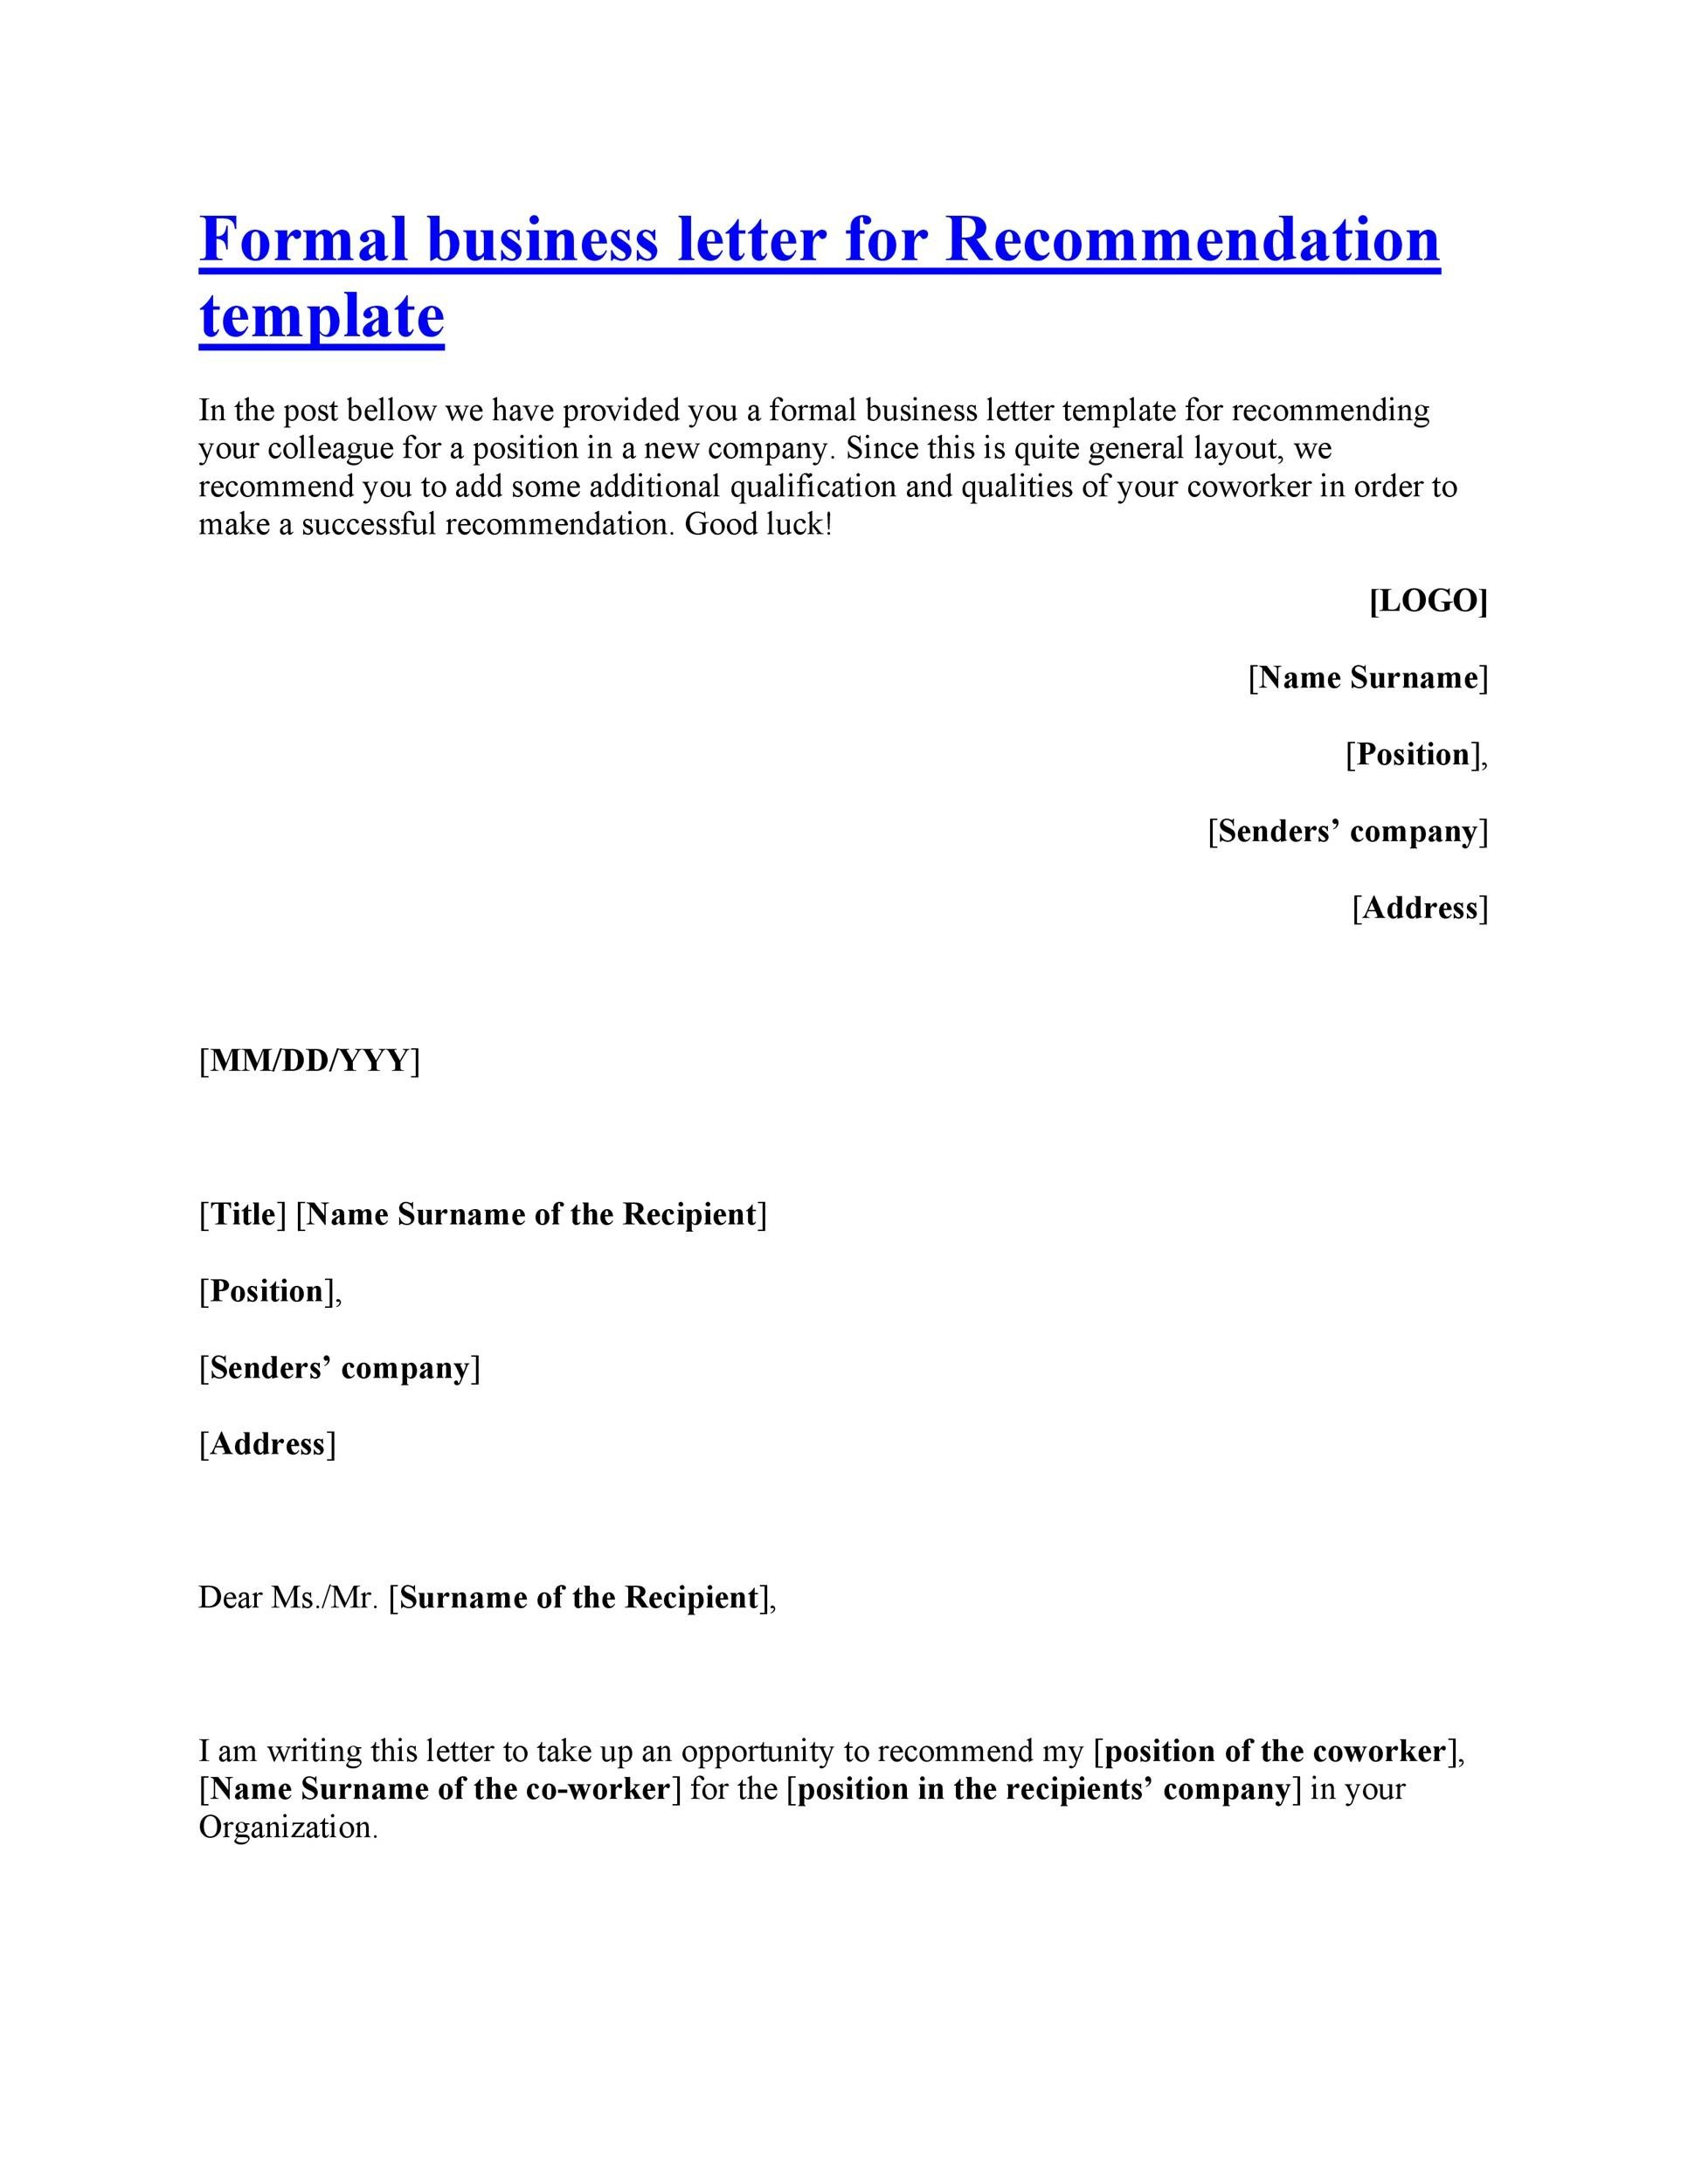 Free Letter Of Recommendation Template And Format 43 Free Letter Of Recommendation Templates And Samples